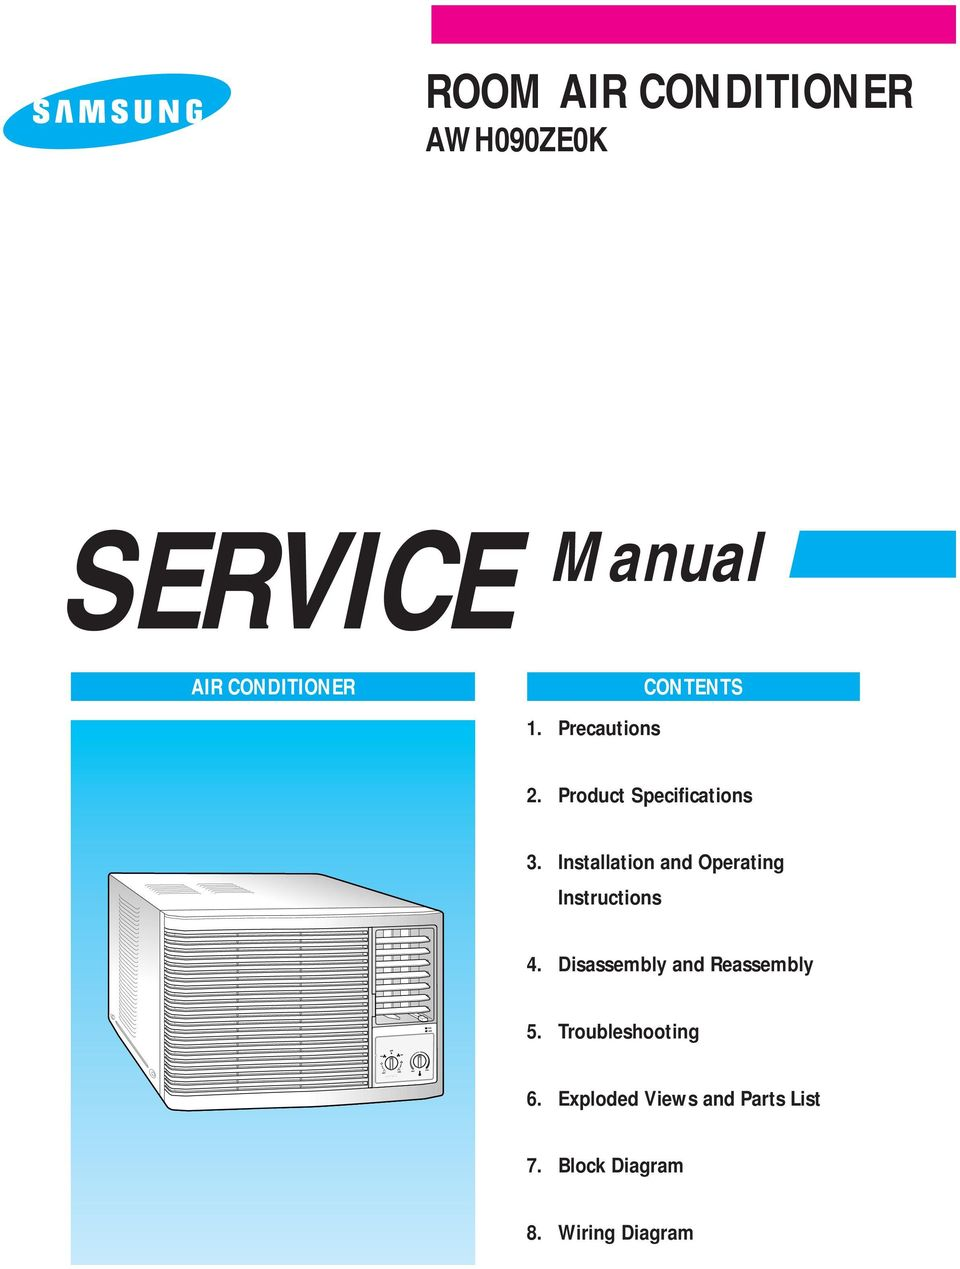 SERVICE Manual AIR CONDITIONER AWH090ZE0K. 1. Precautions. 2 ...